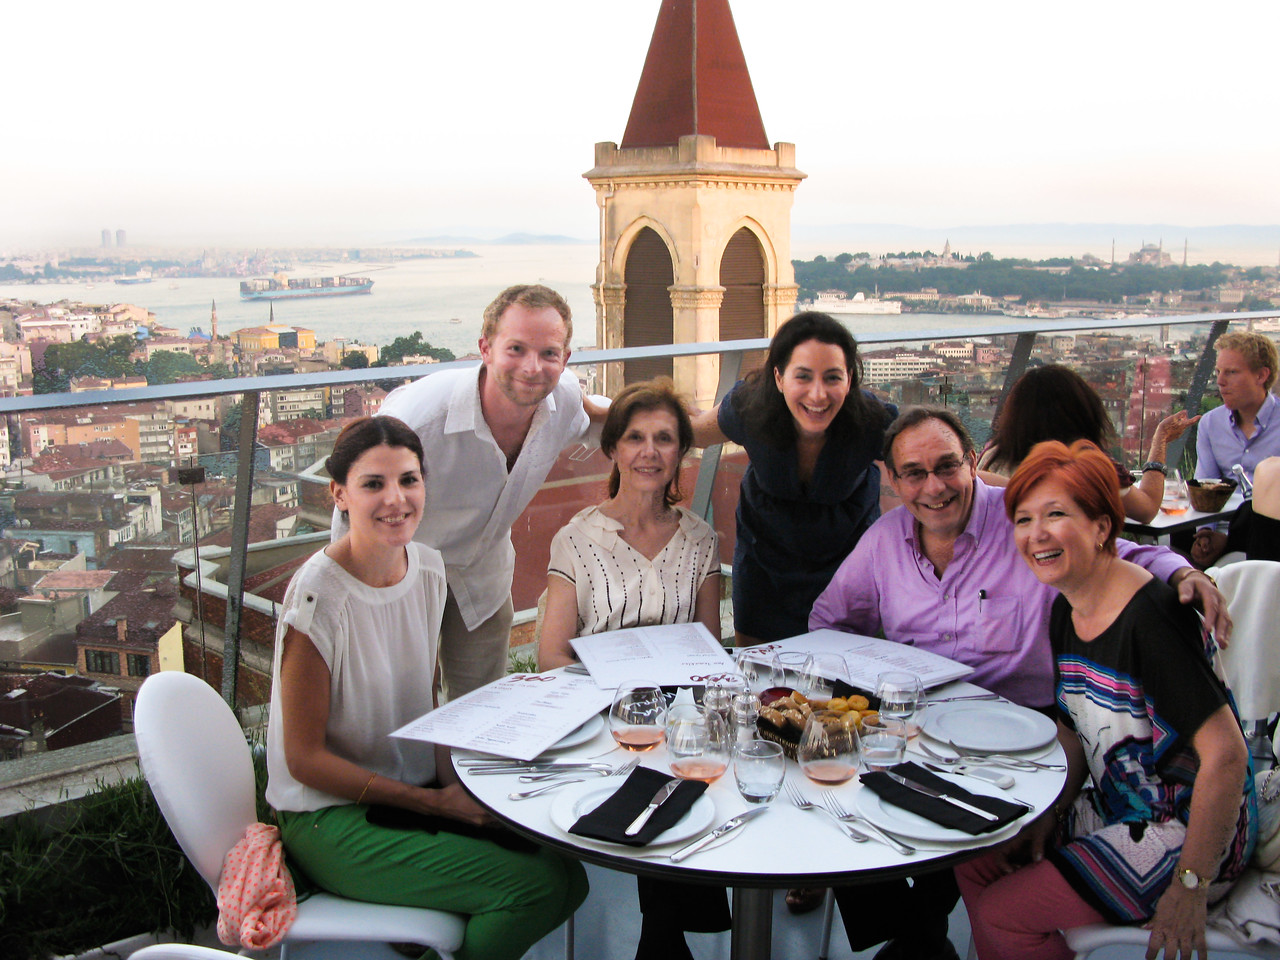 Dinner at 360 lounge with Selcen's father and extended family